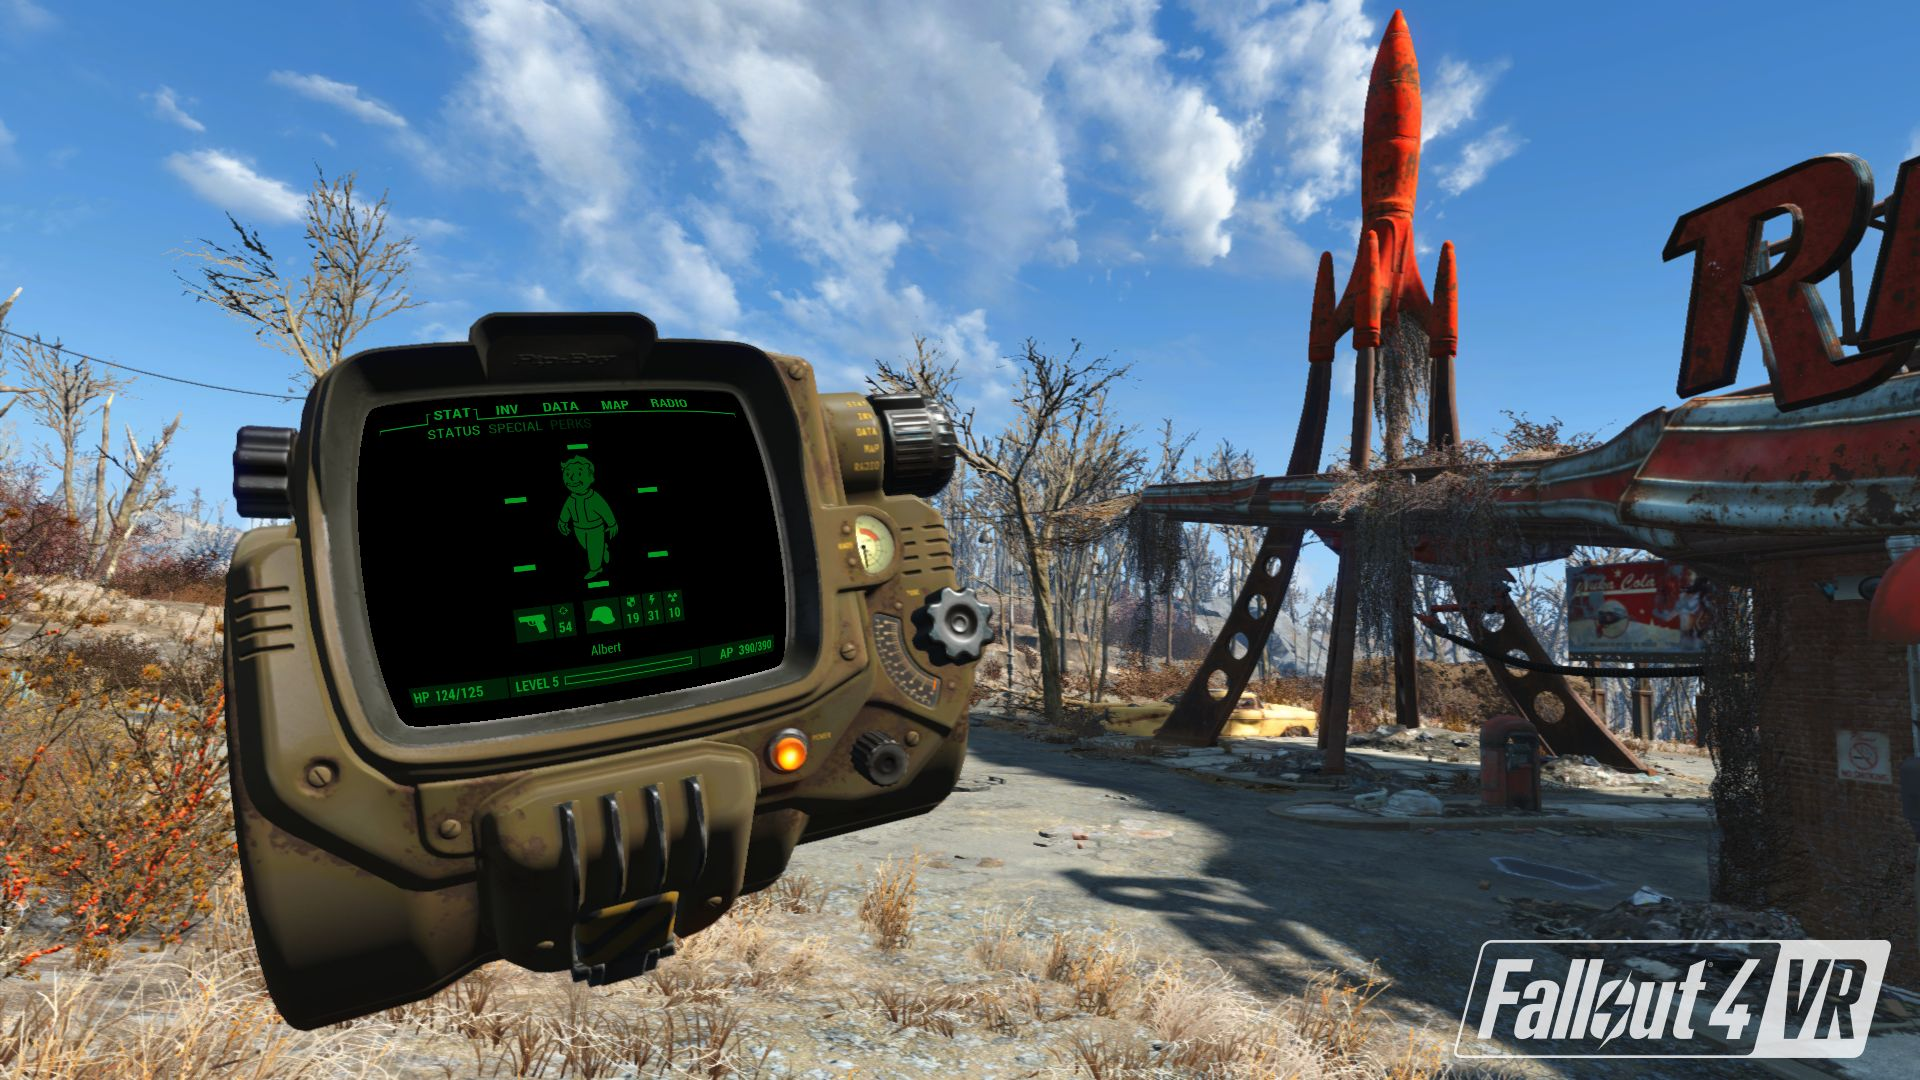 Fallout 4 VR - 1